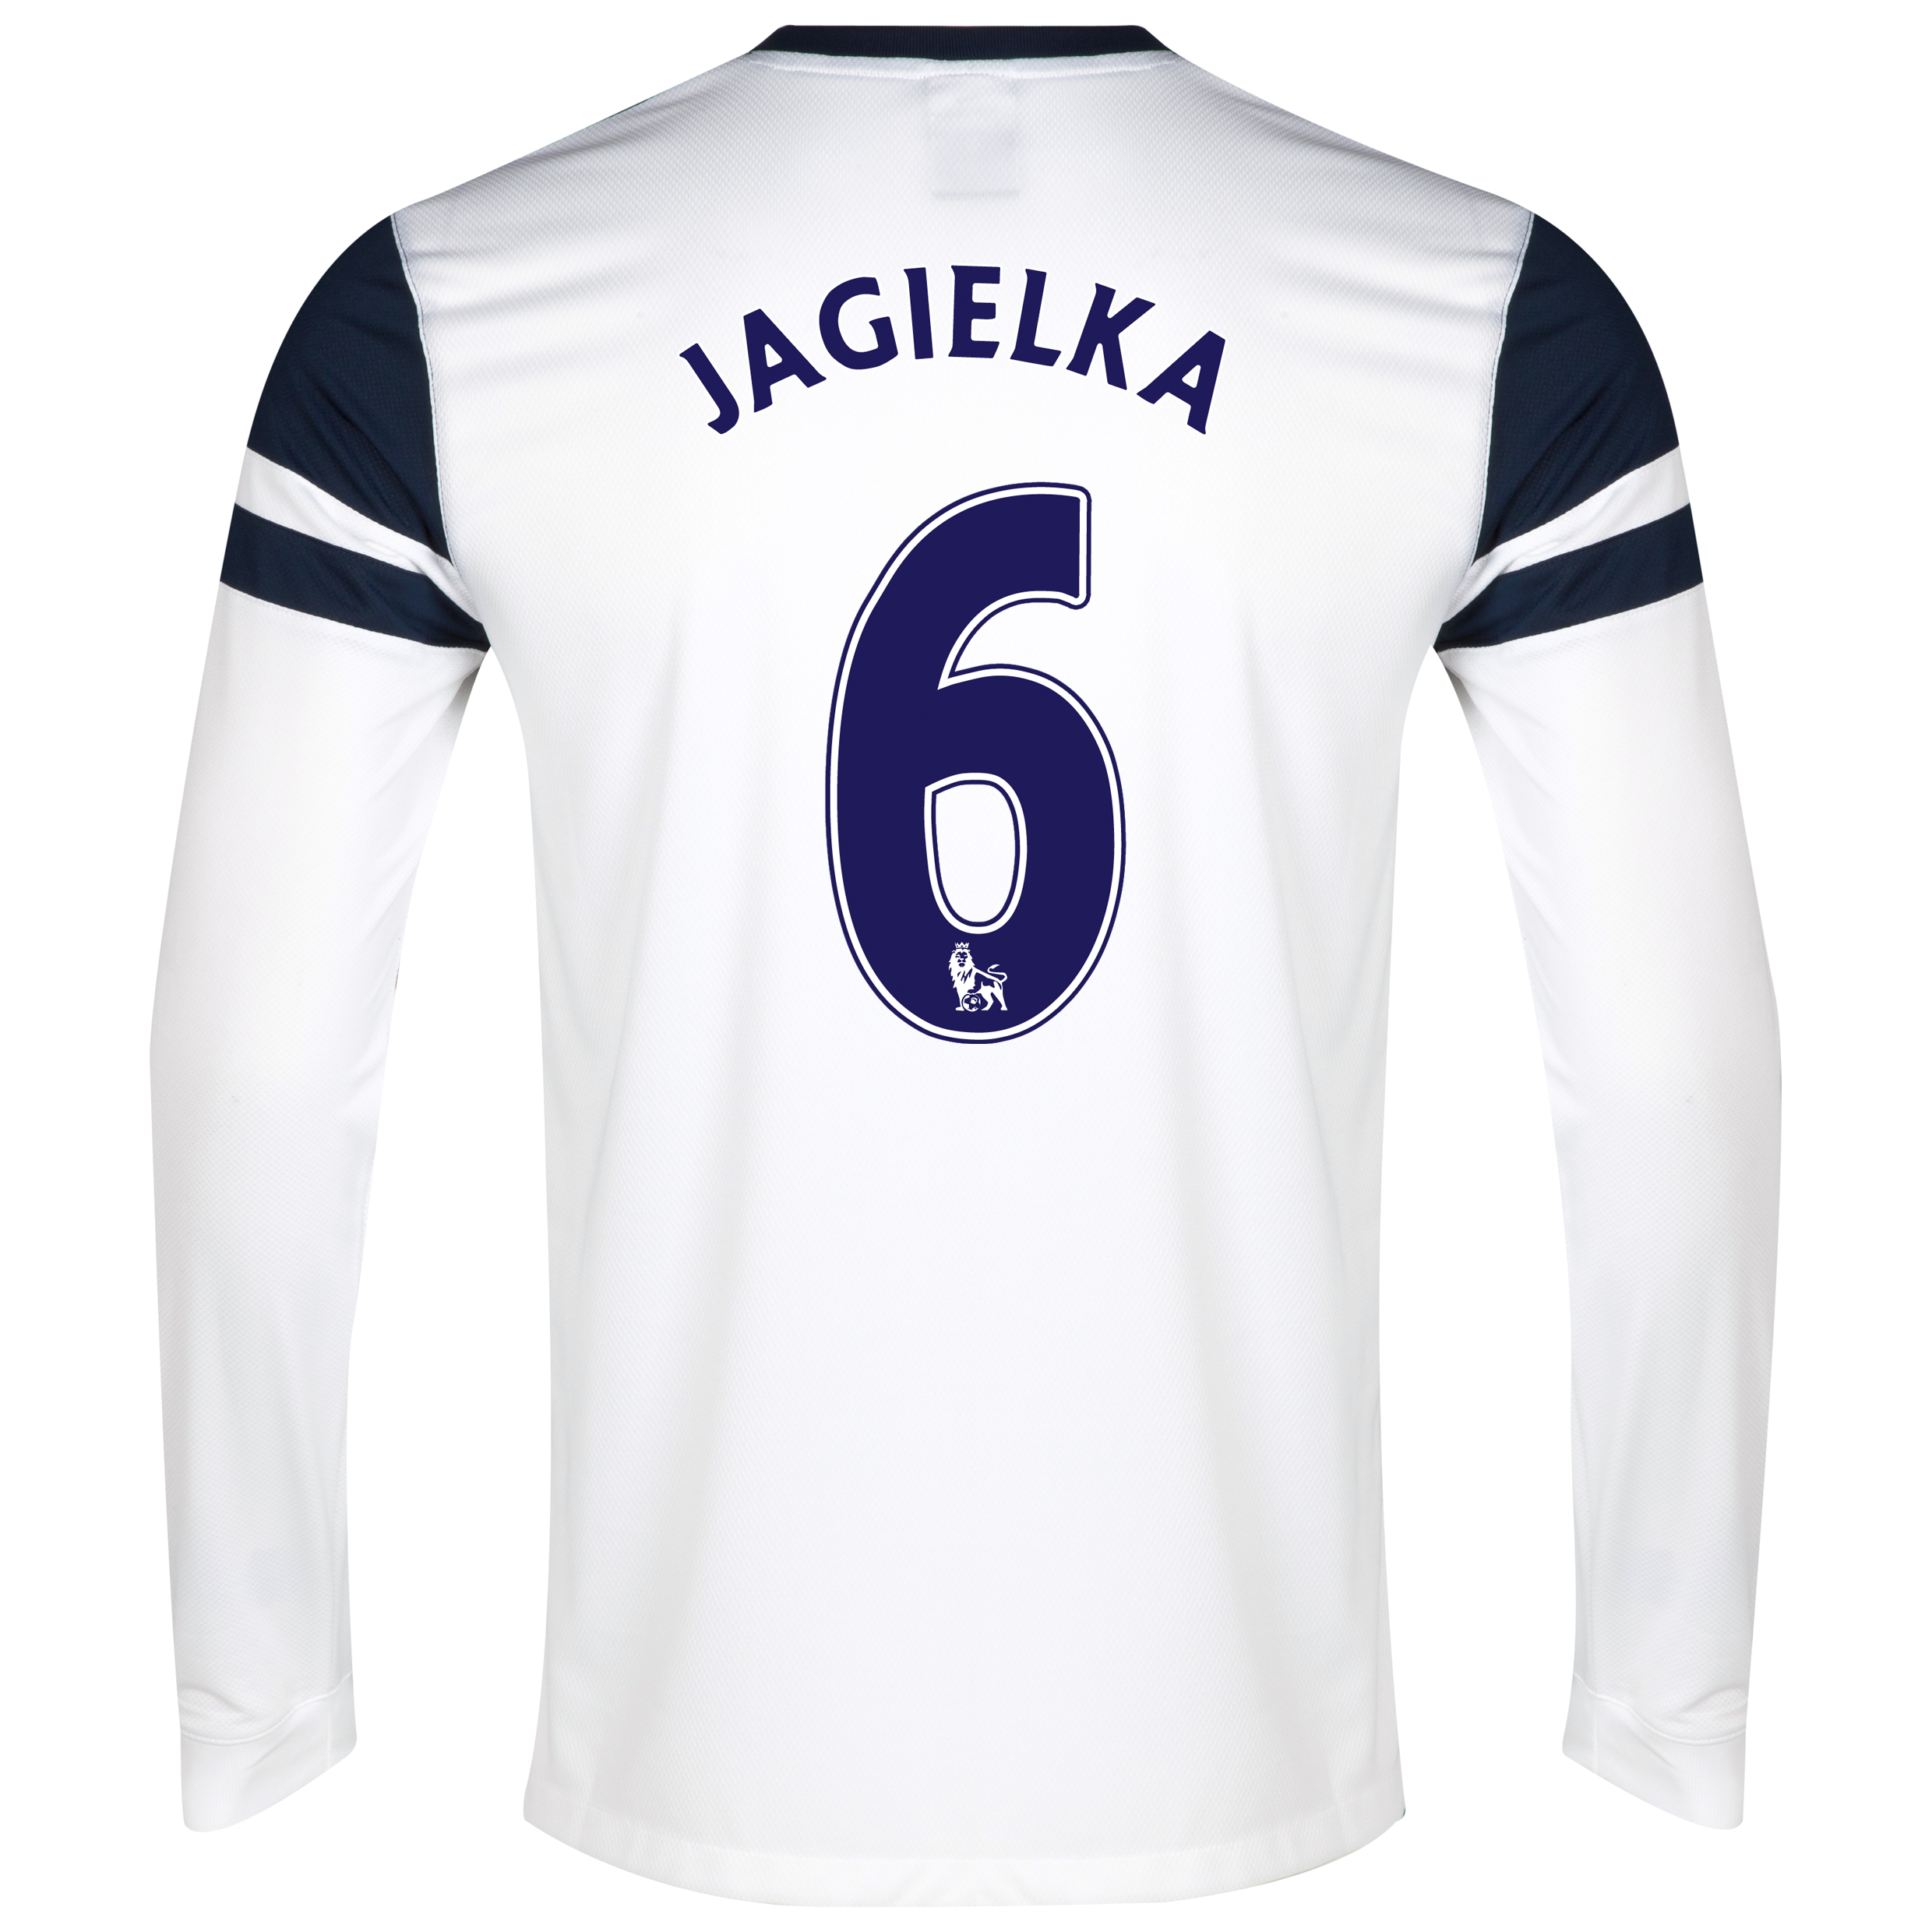 Everton 3rd Shirt 2013/14 - Long Sleeved White with Jagielka 6 printing